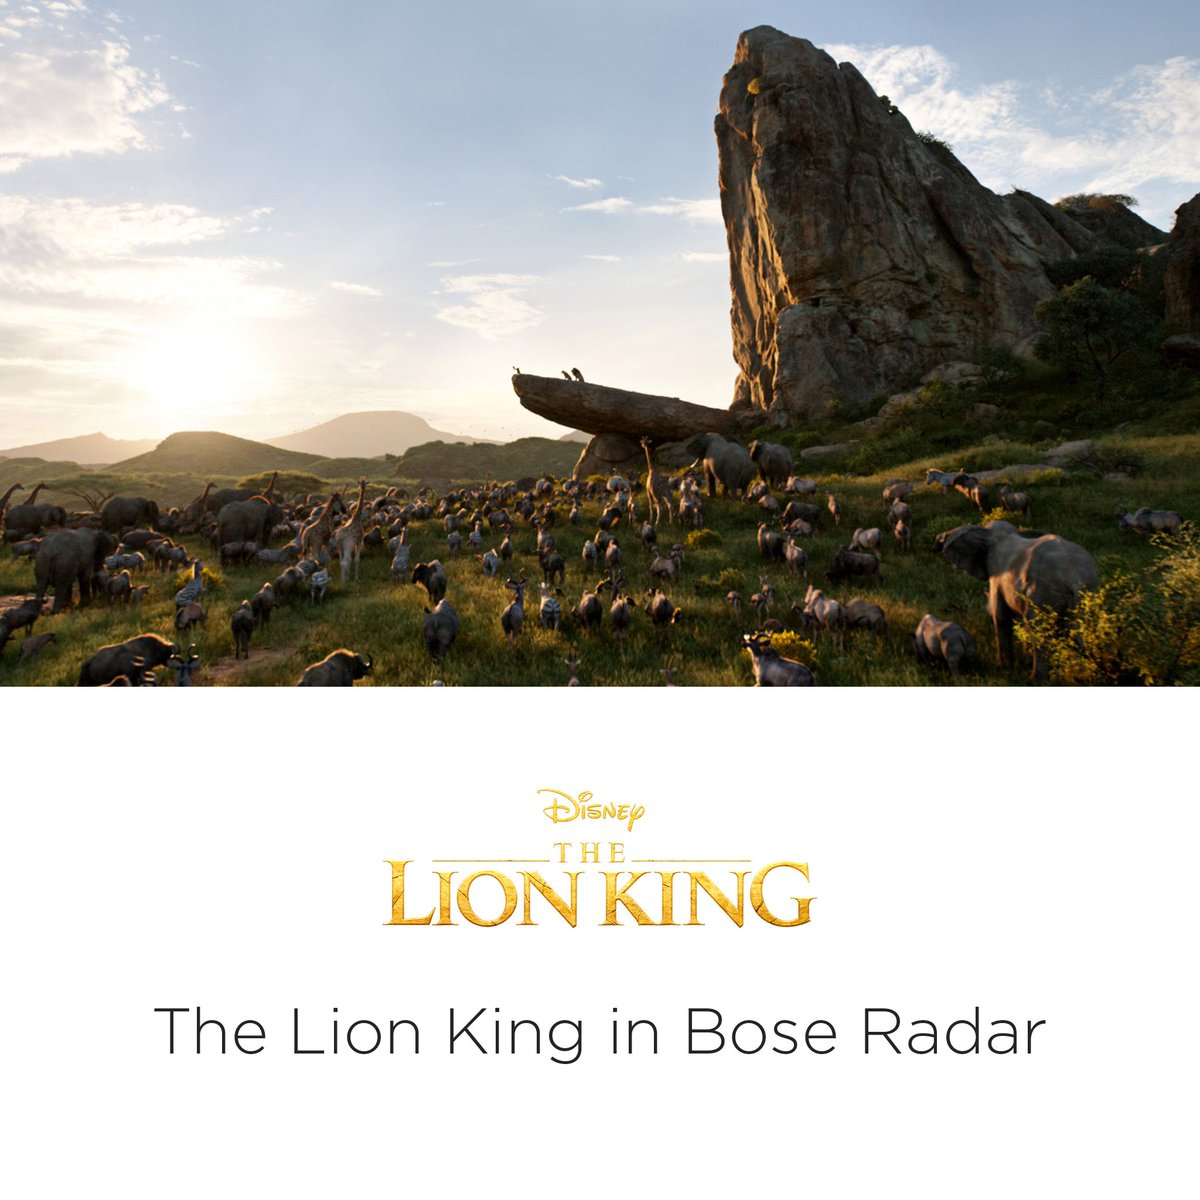 From the plains of Africa to your headphones, experience the magic of Disney's The Lion King in Bose Radar, out now for all Bose AR-enabled wearables. http://bose.life/2ONqGFp    The Lion King is available on Digital & Blu-ray™. Soundtrack available now. © 2019 Disney